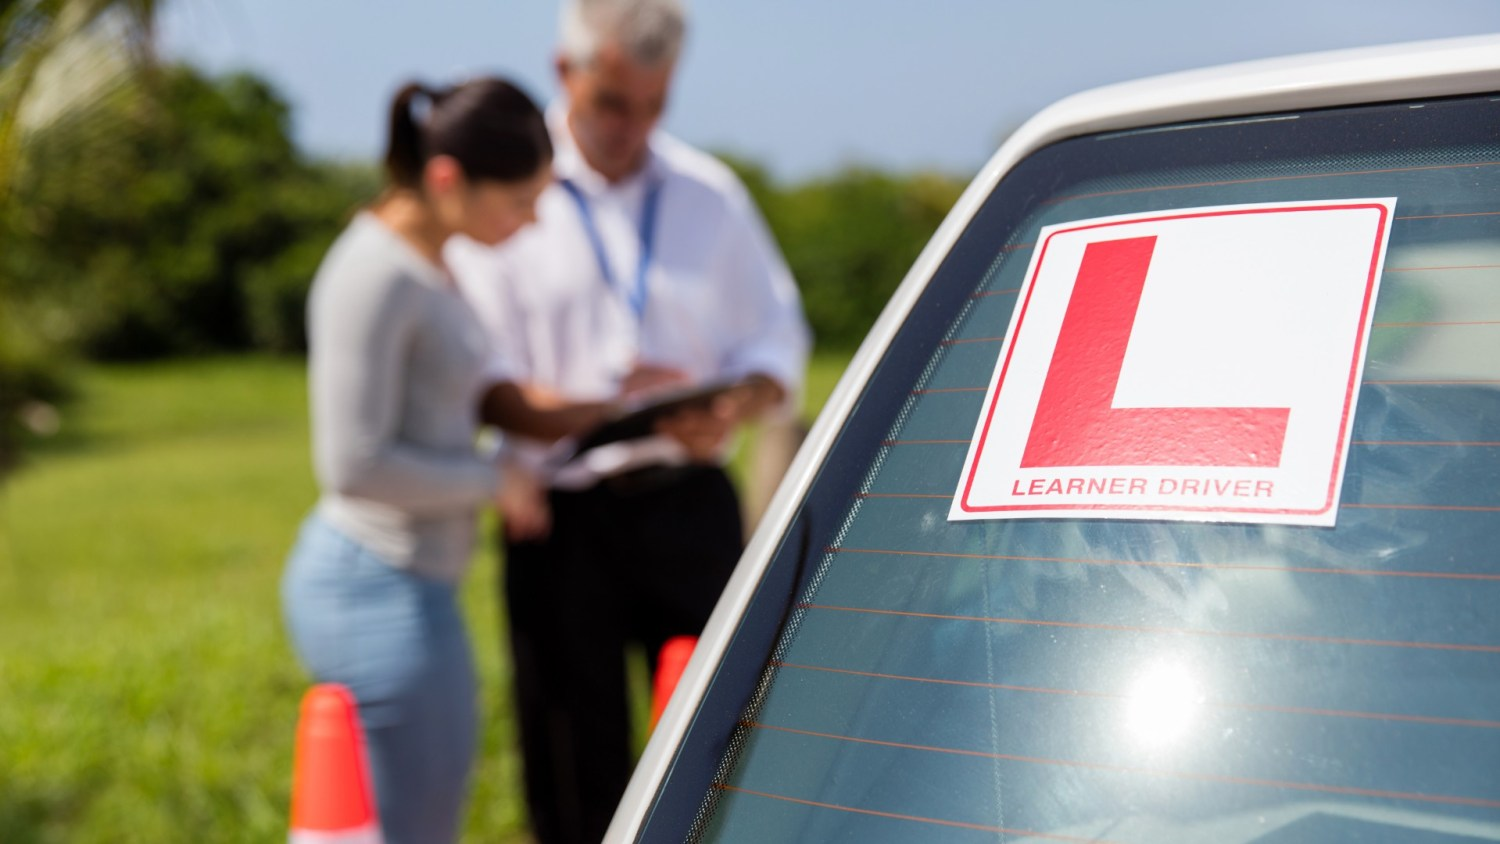 Learner drivers pay less up North